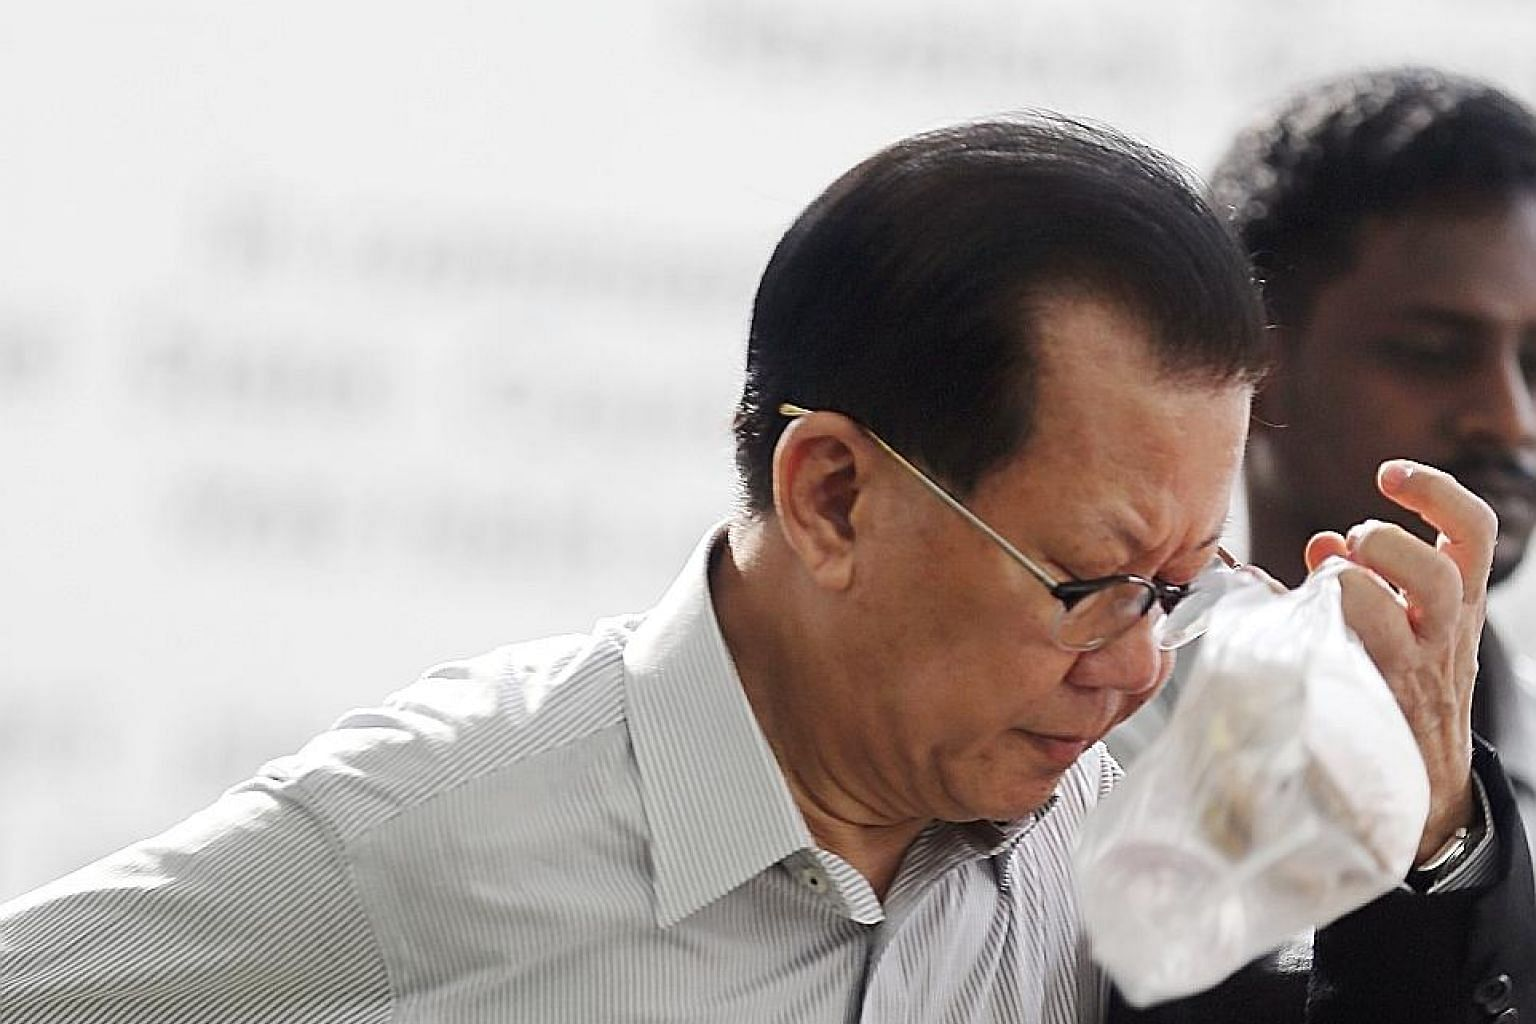 Serial cheat Wong Kok Keong, alias Wong Kock Khiang, 63, is out on $30,000 bail pending his appeal against his sentence.